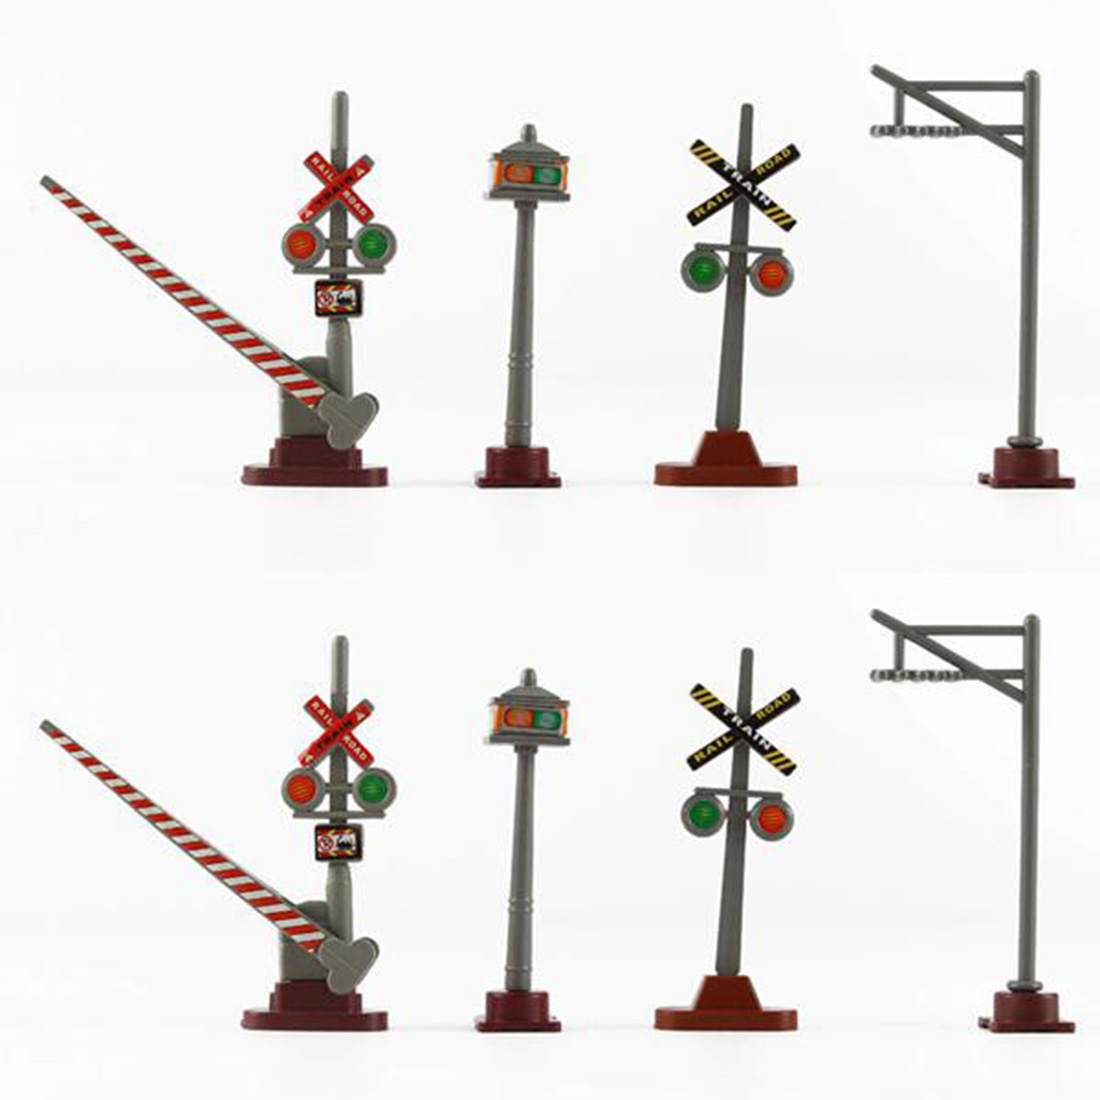 8Pcs 1:87 HO Scale Railway Scene Decoration Traffic Sign Model For Sand Table Building